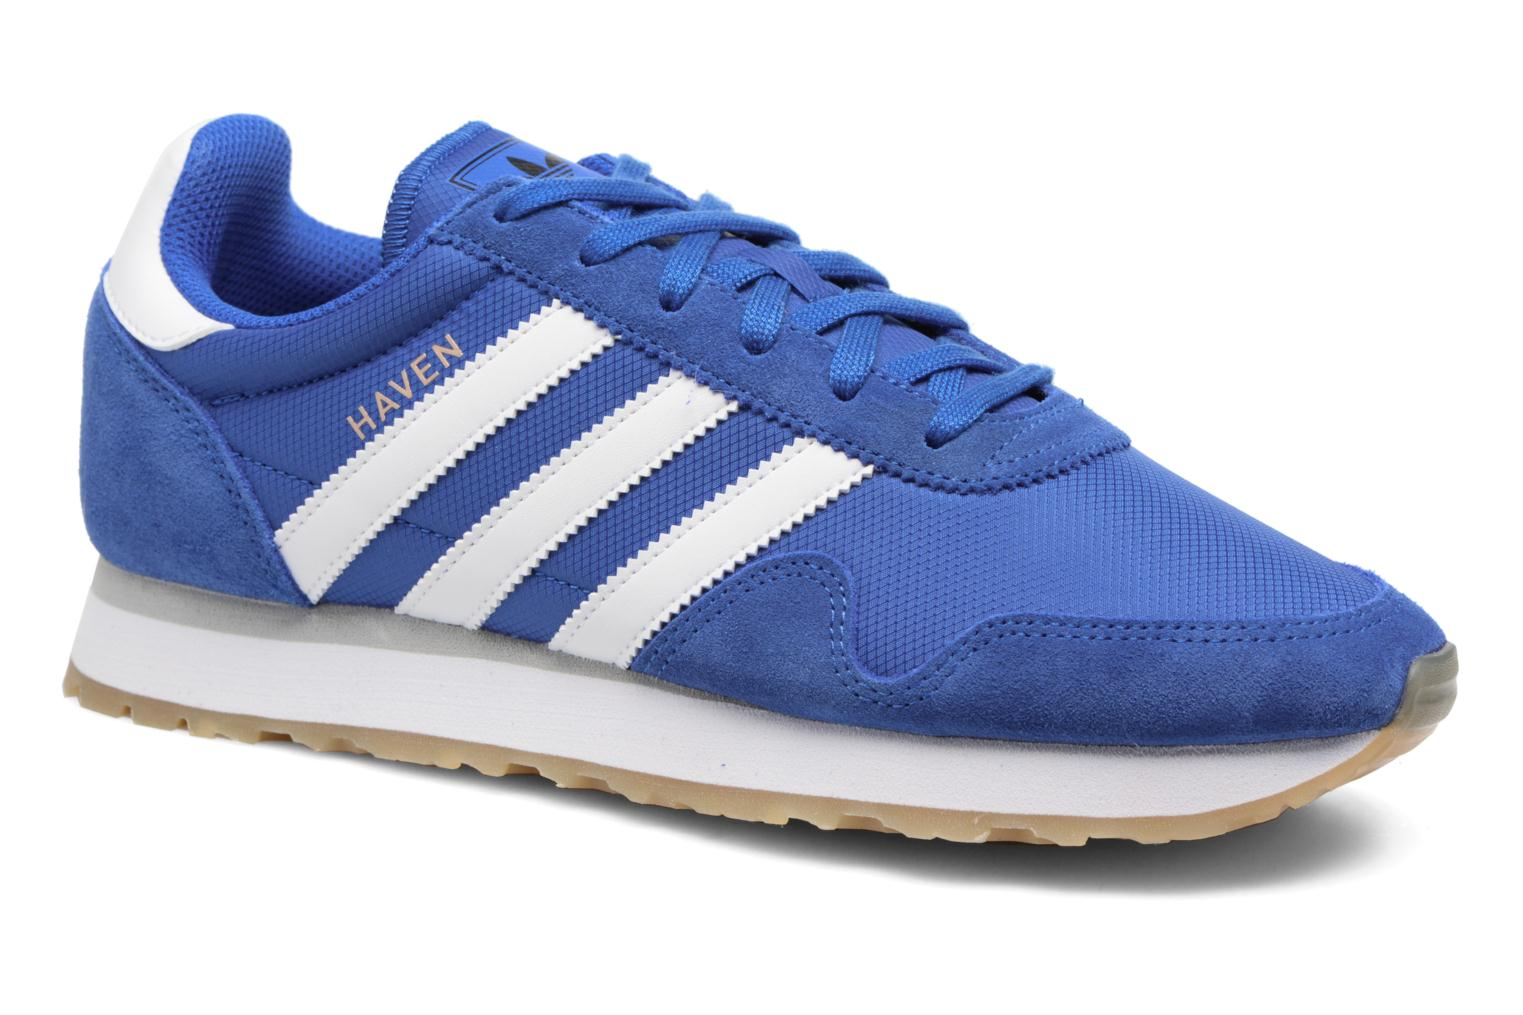 Adidas Originals Haven (Bleu) - Baskets en Más cómodo Confortable et belle